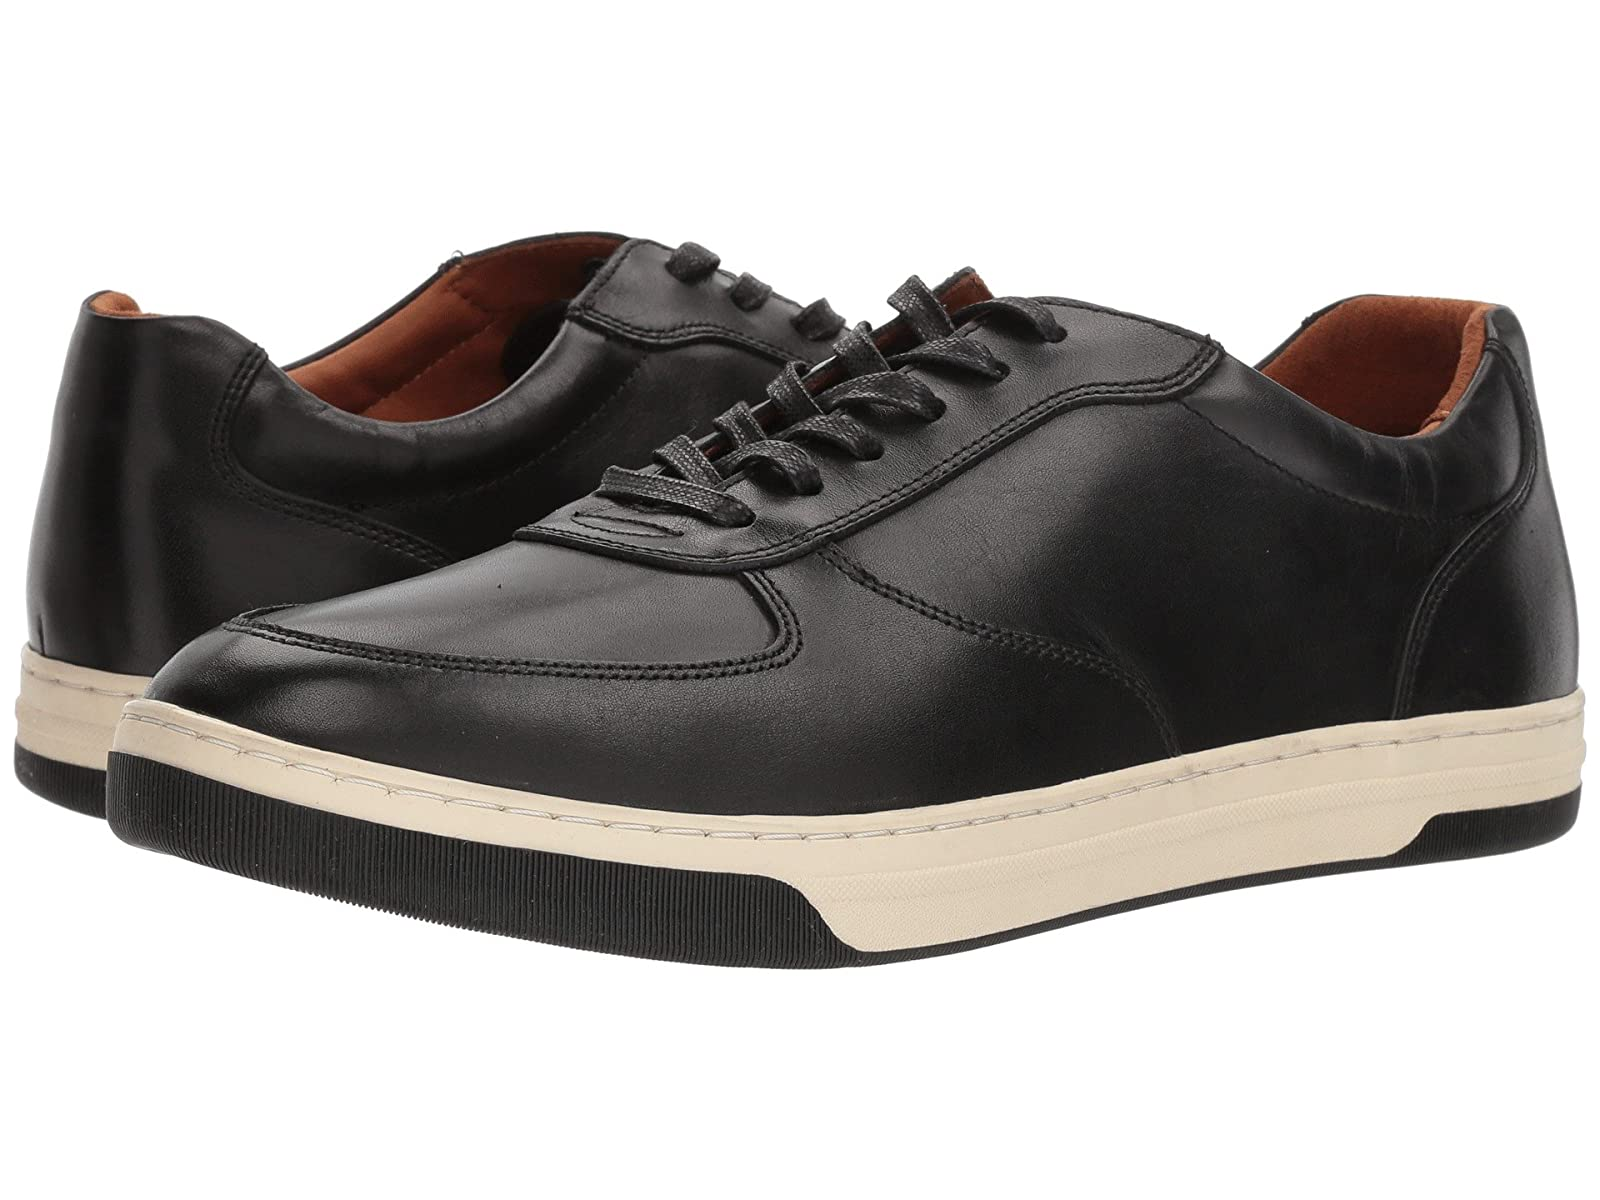 Johnston & Murphy Fenton Casual Dress SneakerAtmospheric grades have affordable shoes